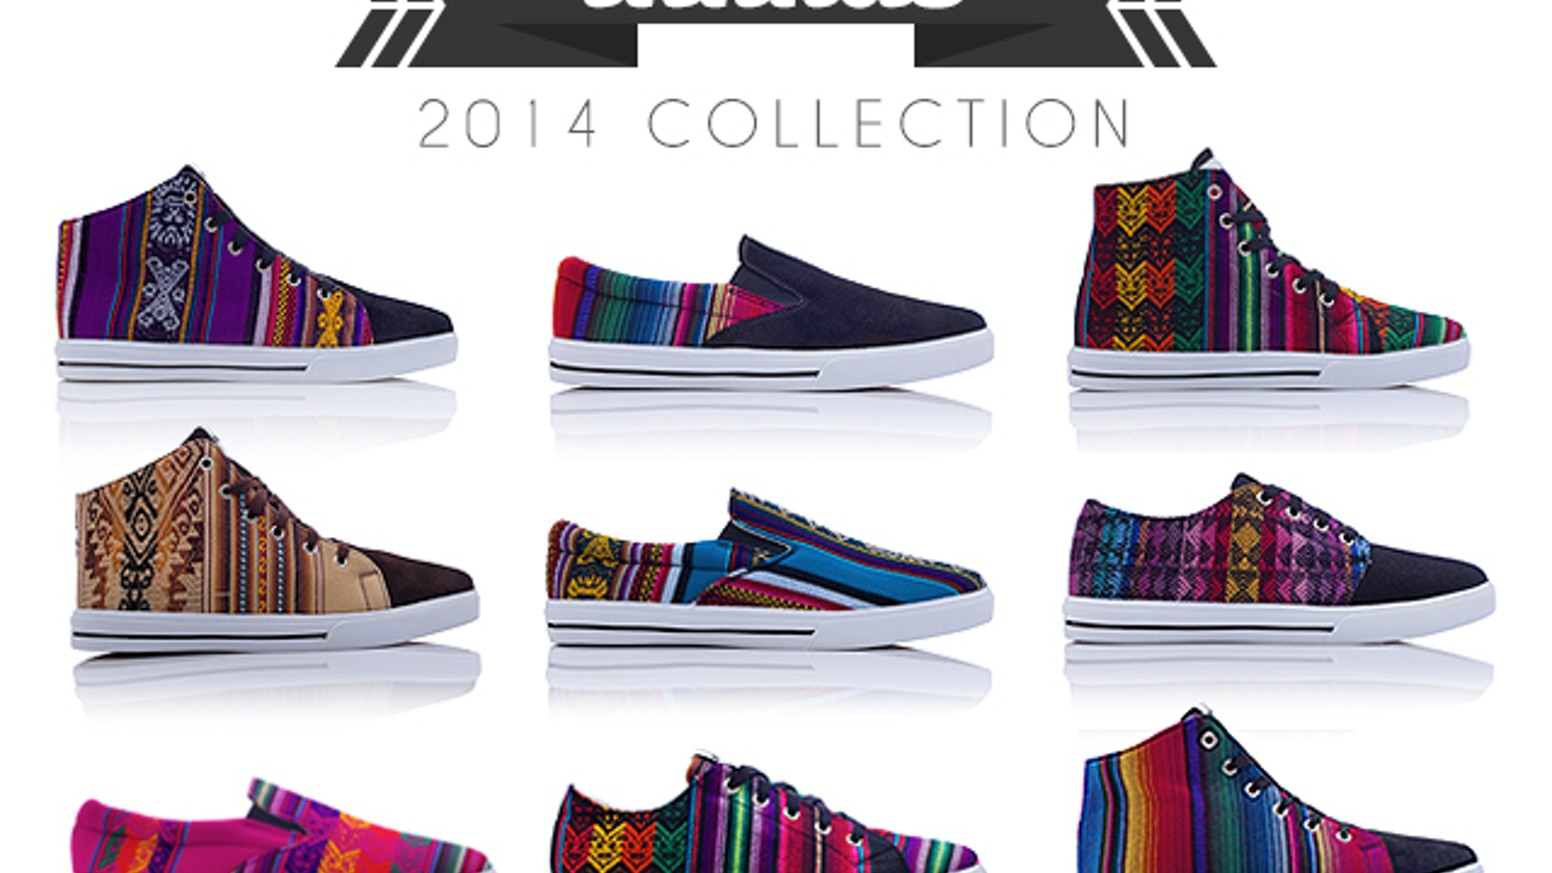 Inkkas are beautiful, unique shoes handcrafted by local artisans in Peru using authentic South American textiles.